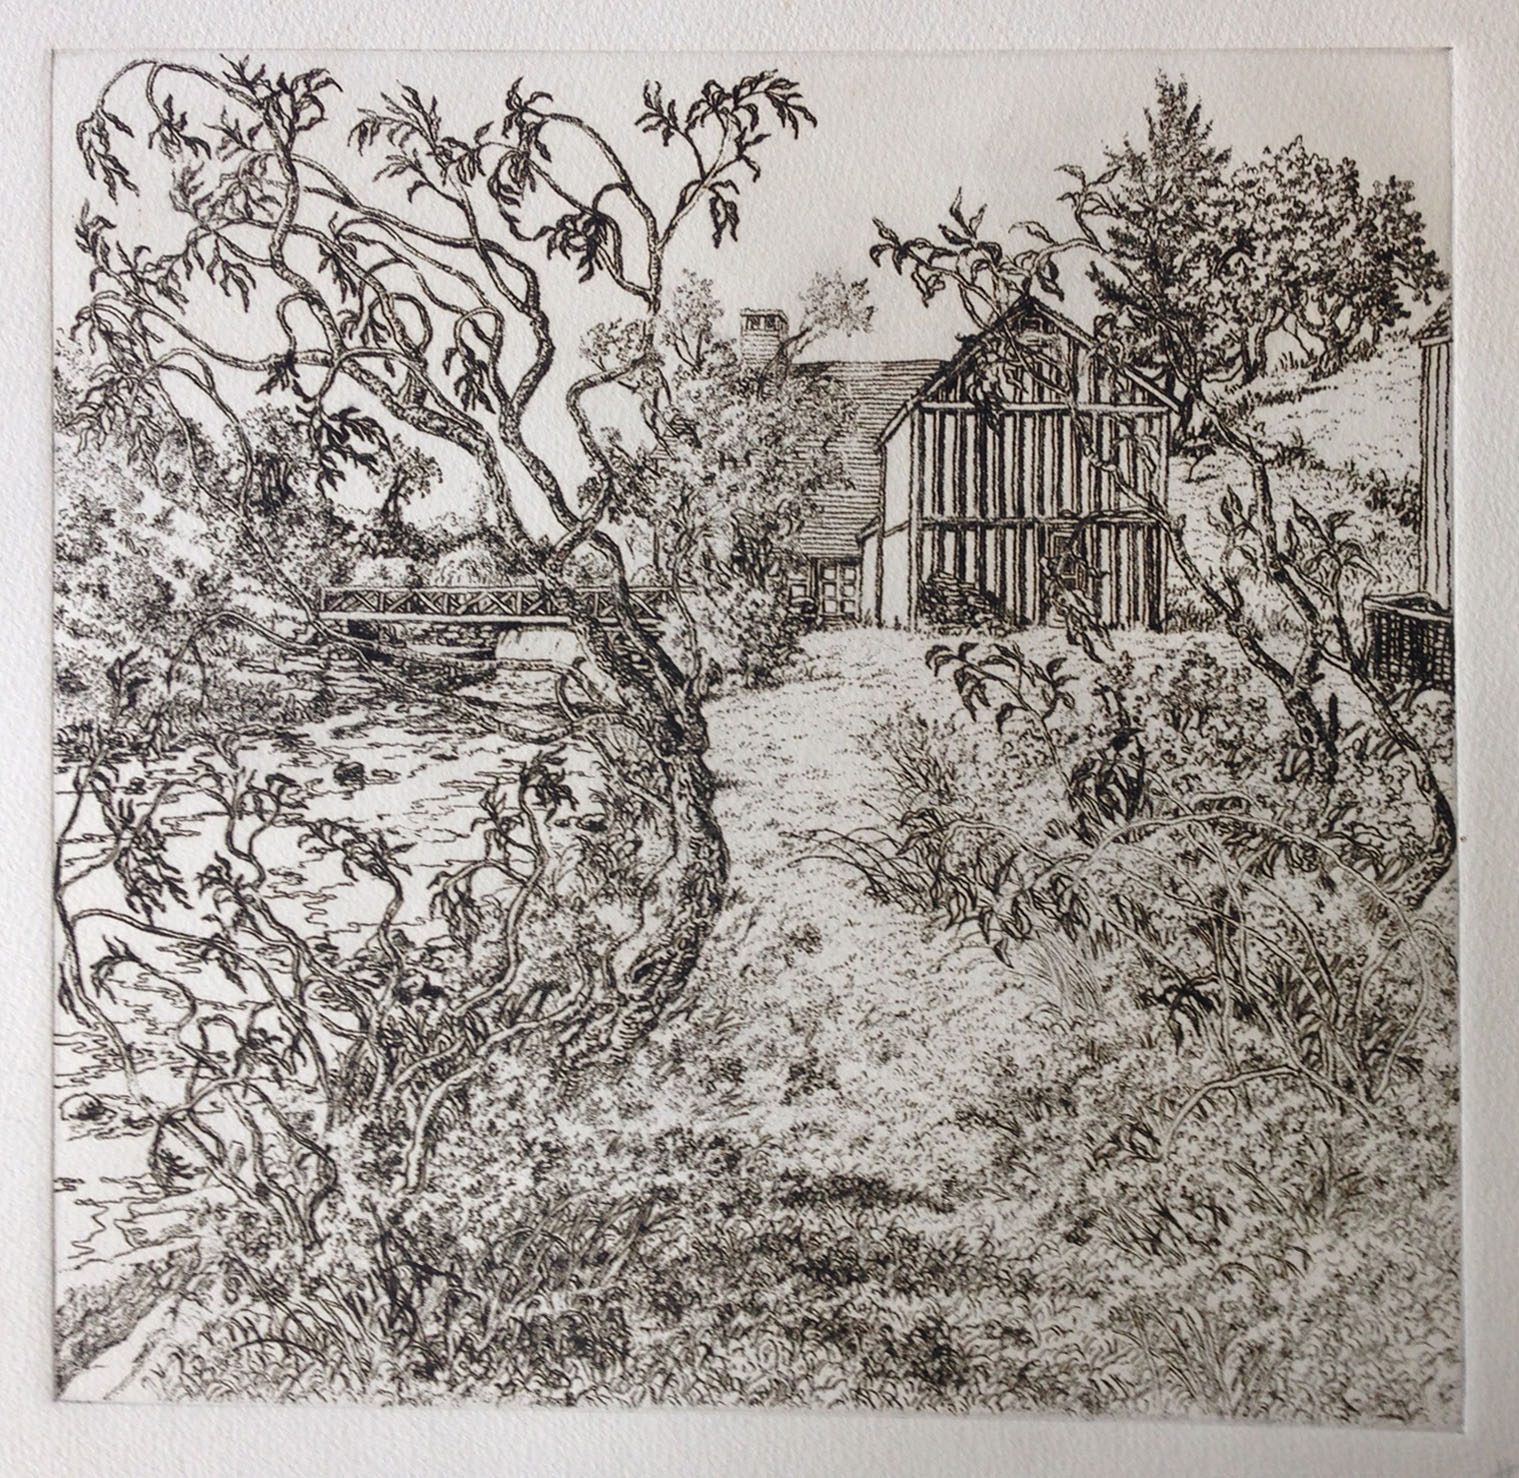 The ink drawing was used to develop the print as a soft ground etching, quite different in character from lines drawn with a needle into a hard ground.